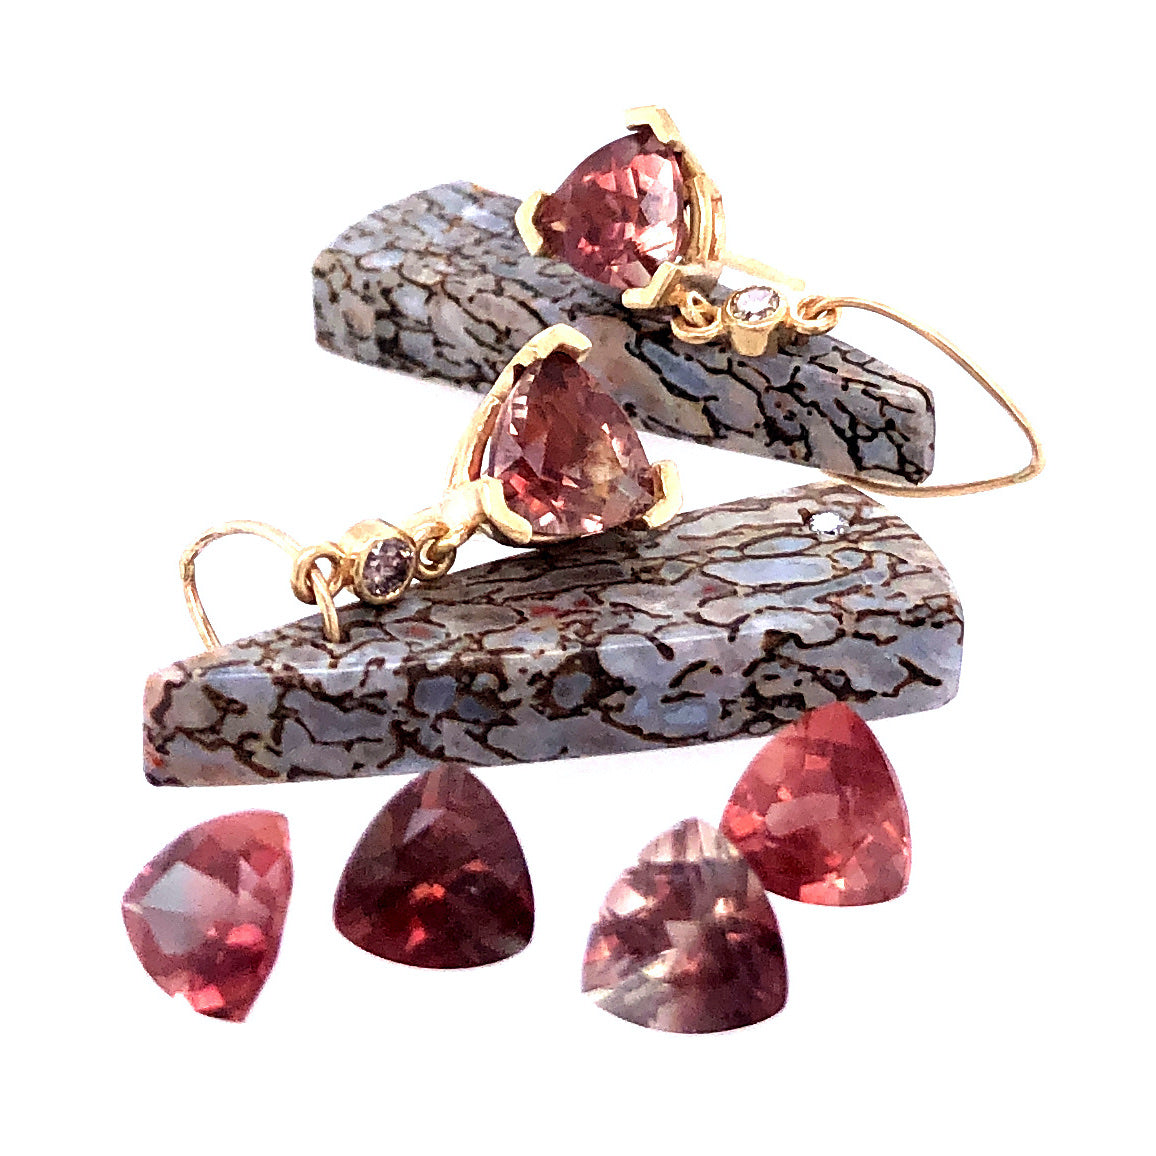 Sunstone, Dinosaur Bone, and Diamond Earrings, Handmade in 14k Gold